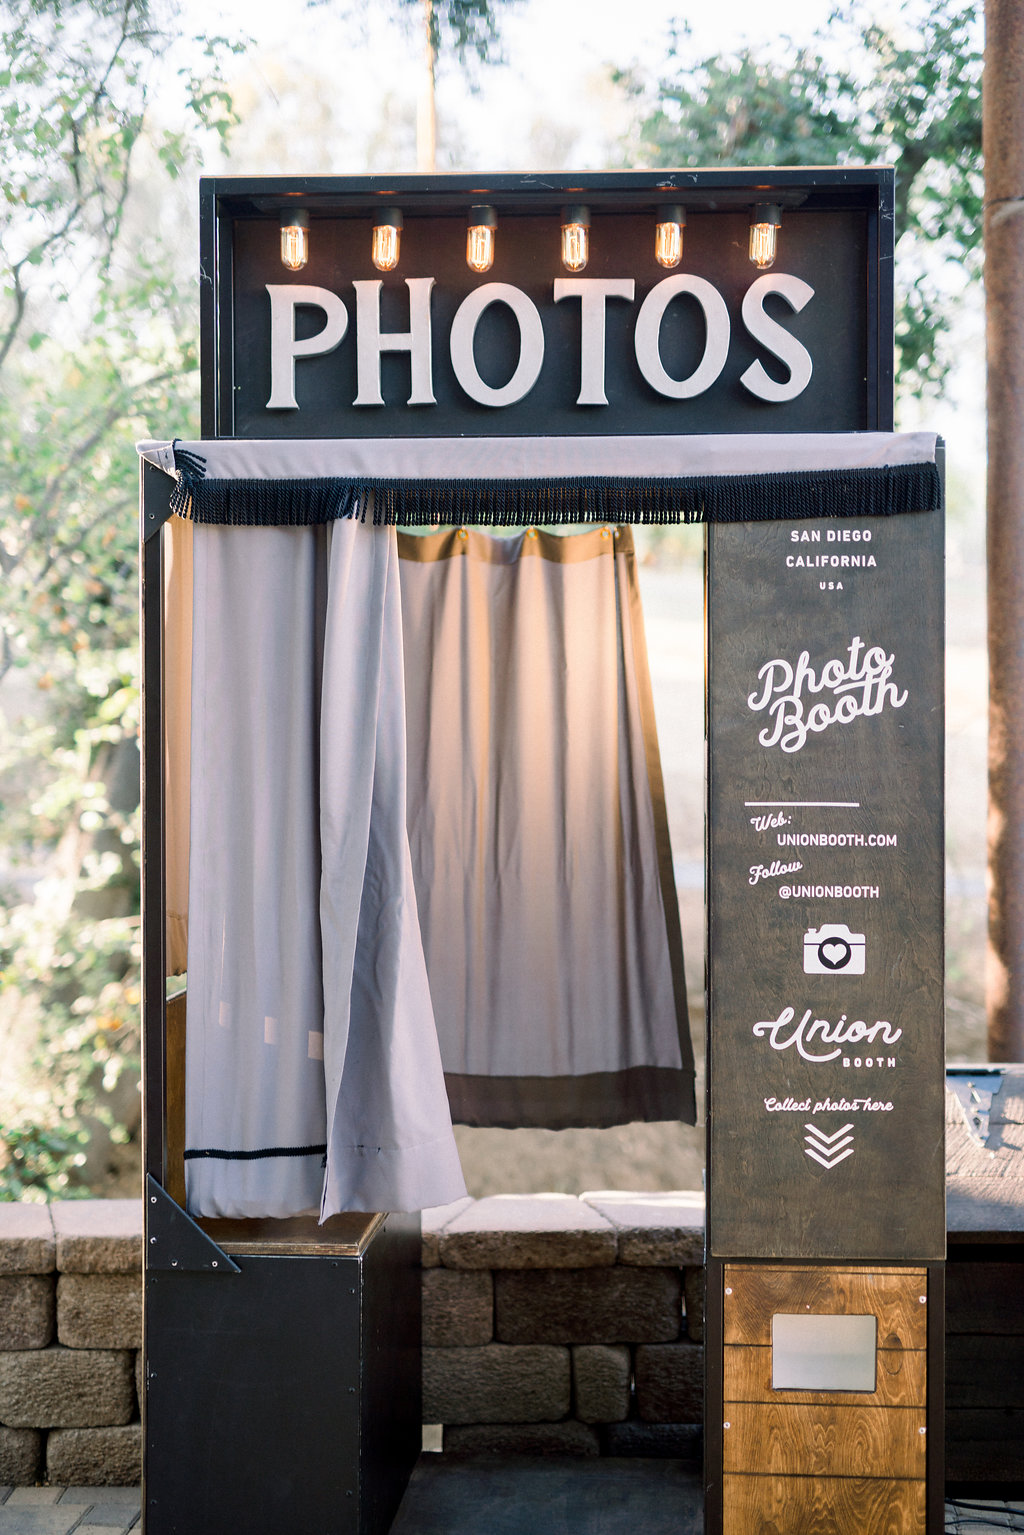 Vintage style photo booth rental San Diego | Kenwood enclosed booth for rental and purchase by Union Booth